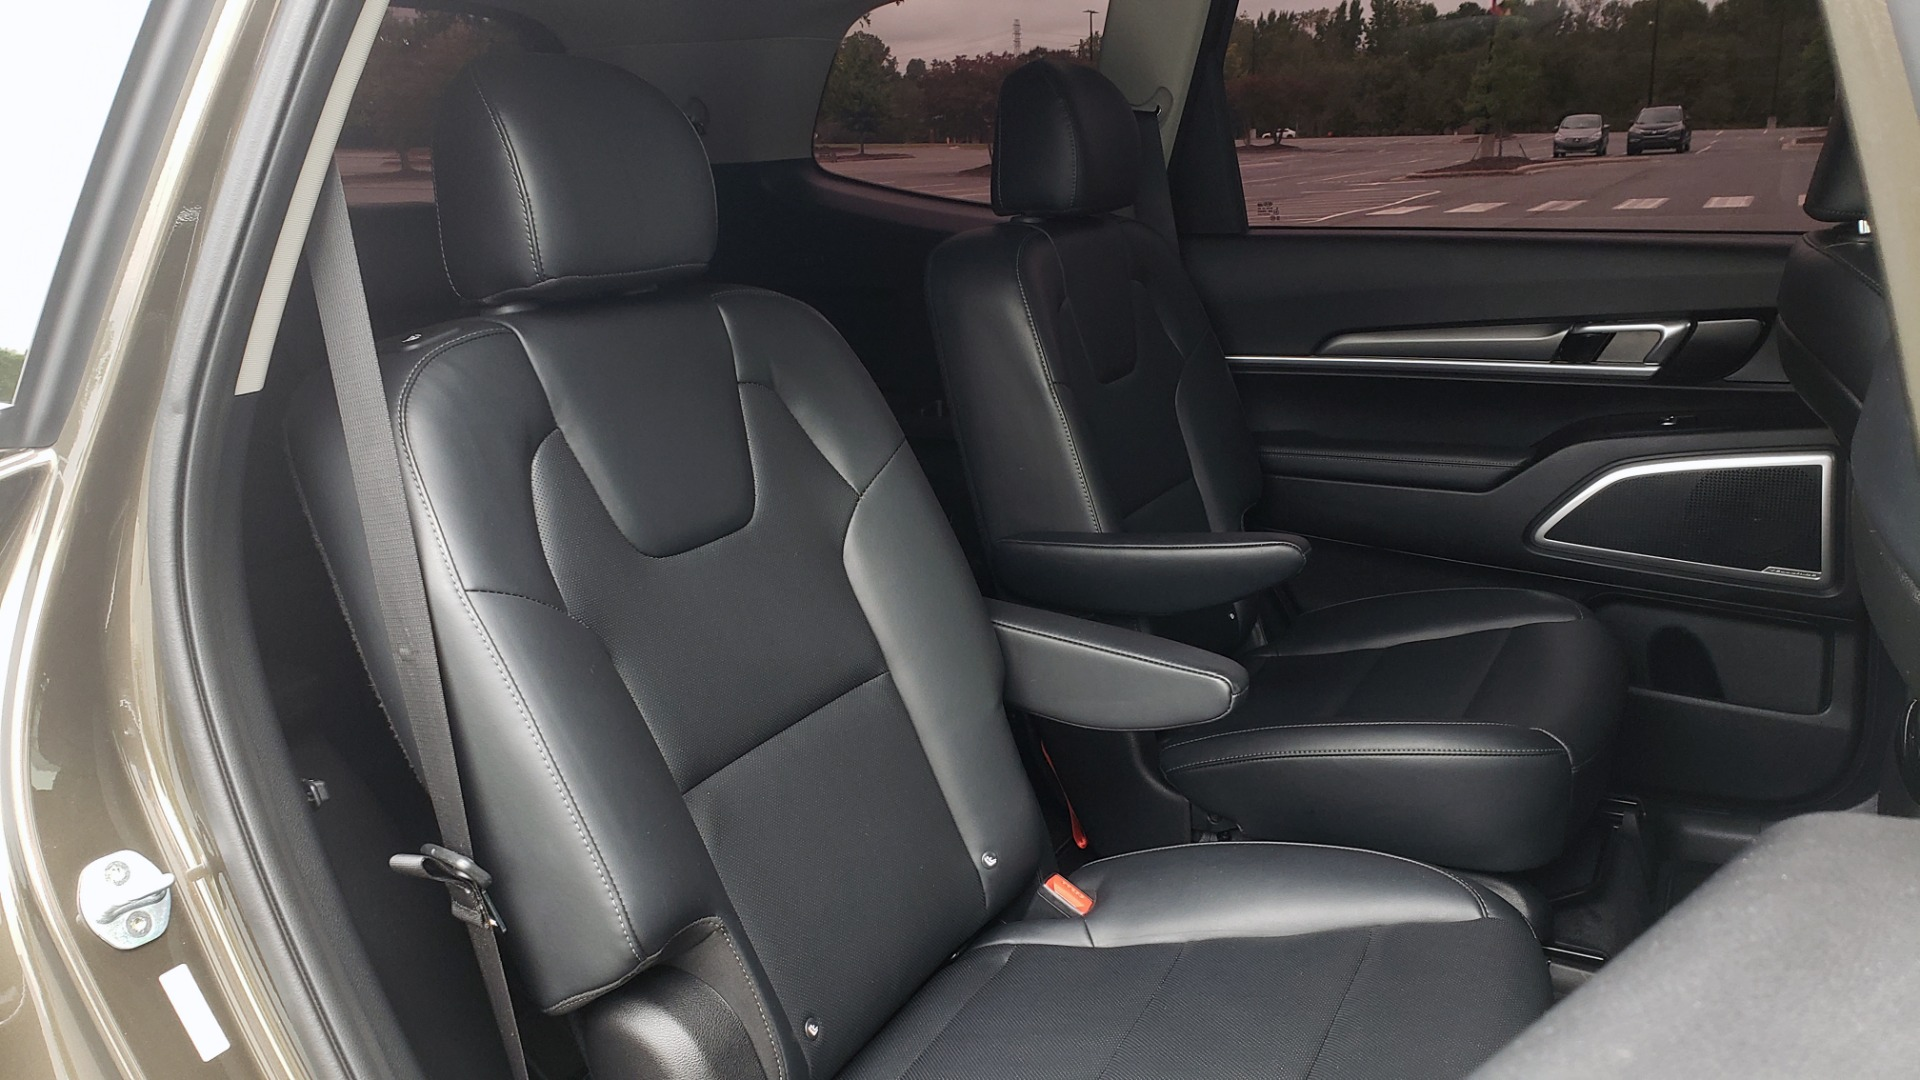 Used 2020 Kia TELLURIDE S 3.8L / FWD / 8-SPD AUTO / SUNROOF / REARVIEW / 20INCH WHEELS for sale $41,595 at Formula Imports in Charlotte NC 28227 75